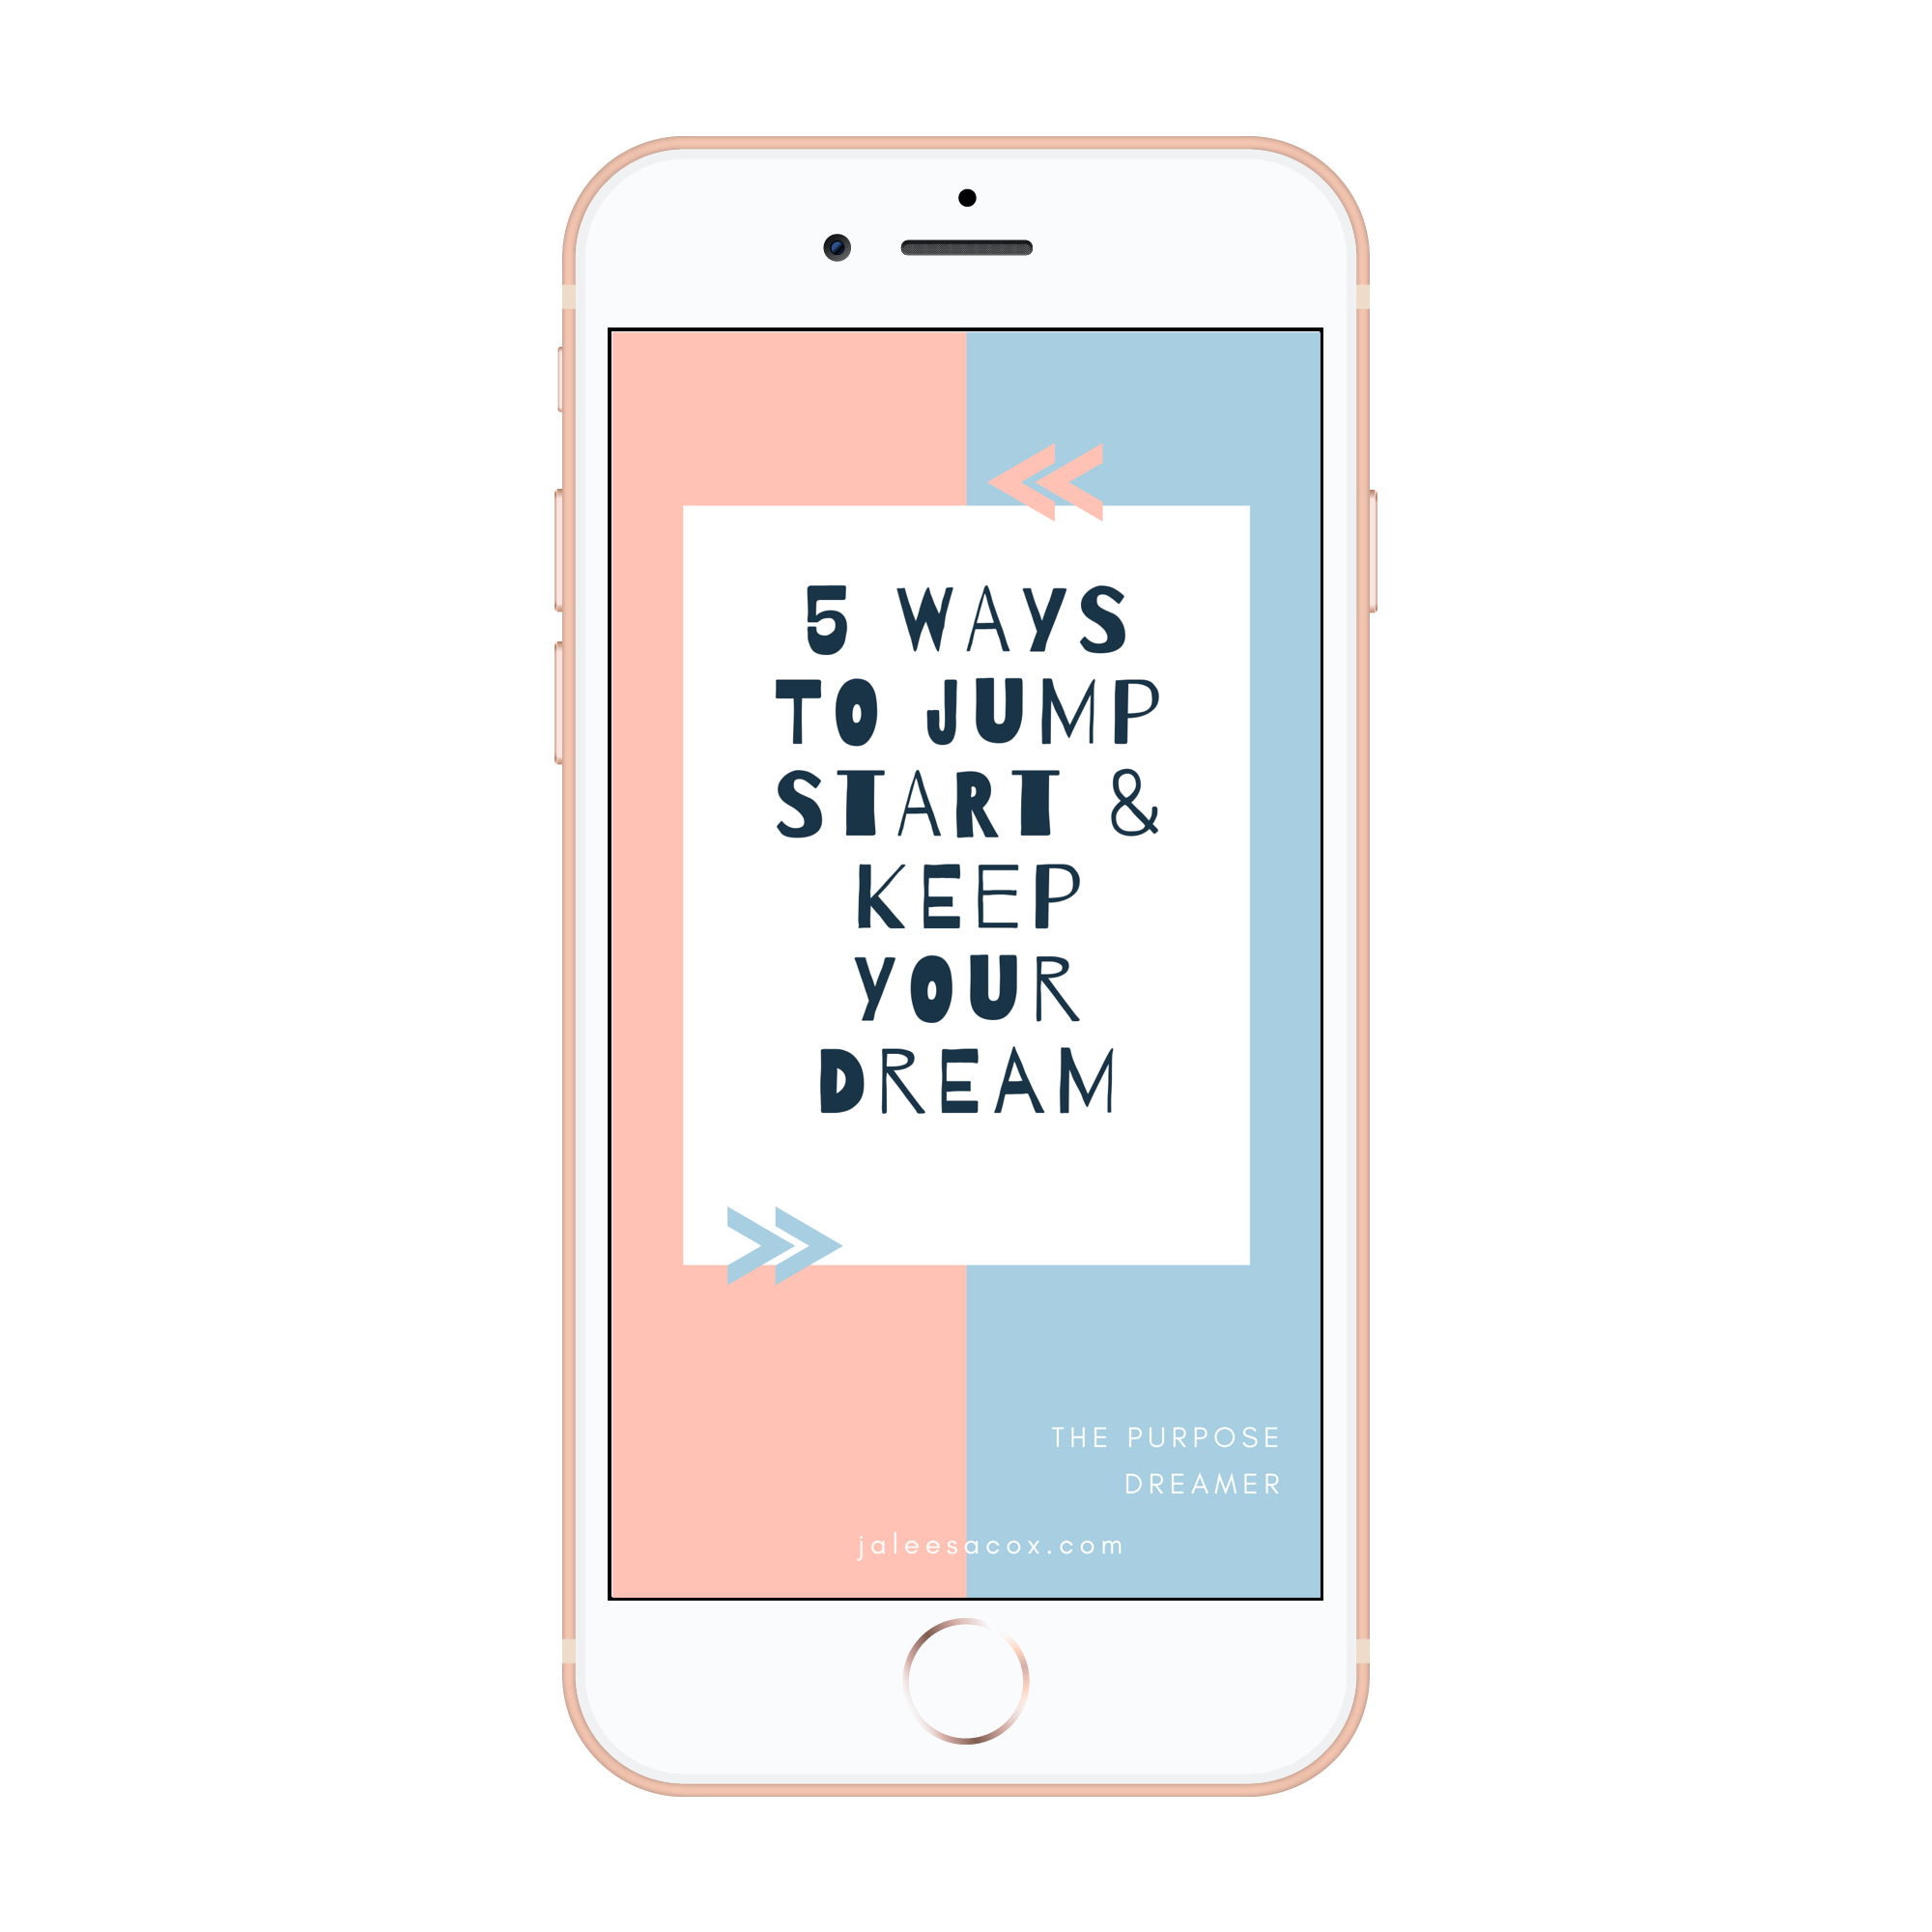 Copy of 5 Ways to Keep Your Dream_iphone8plusgold_portrait.png